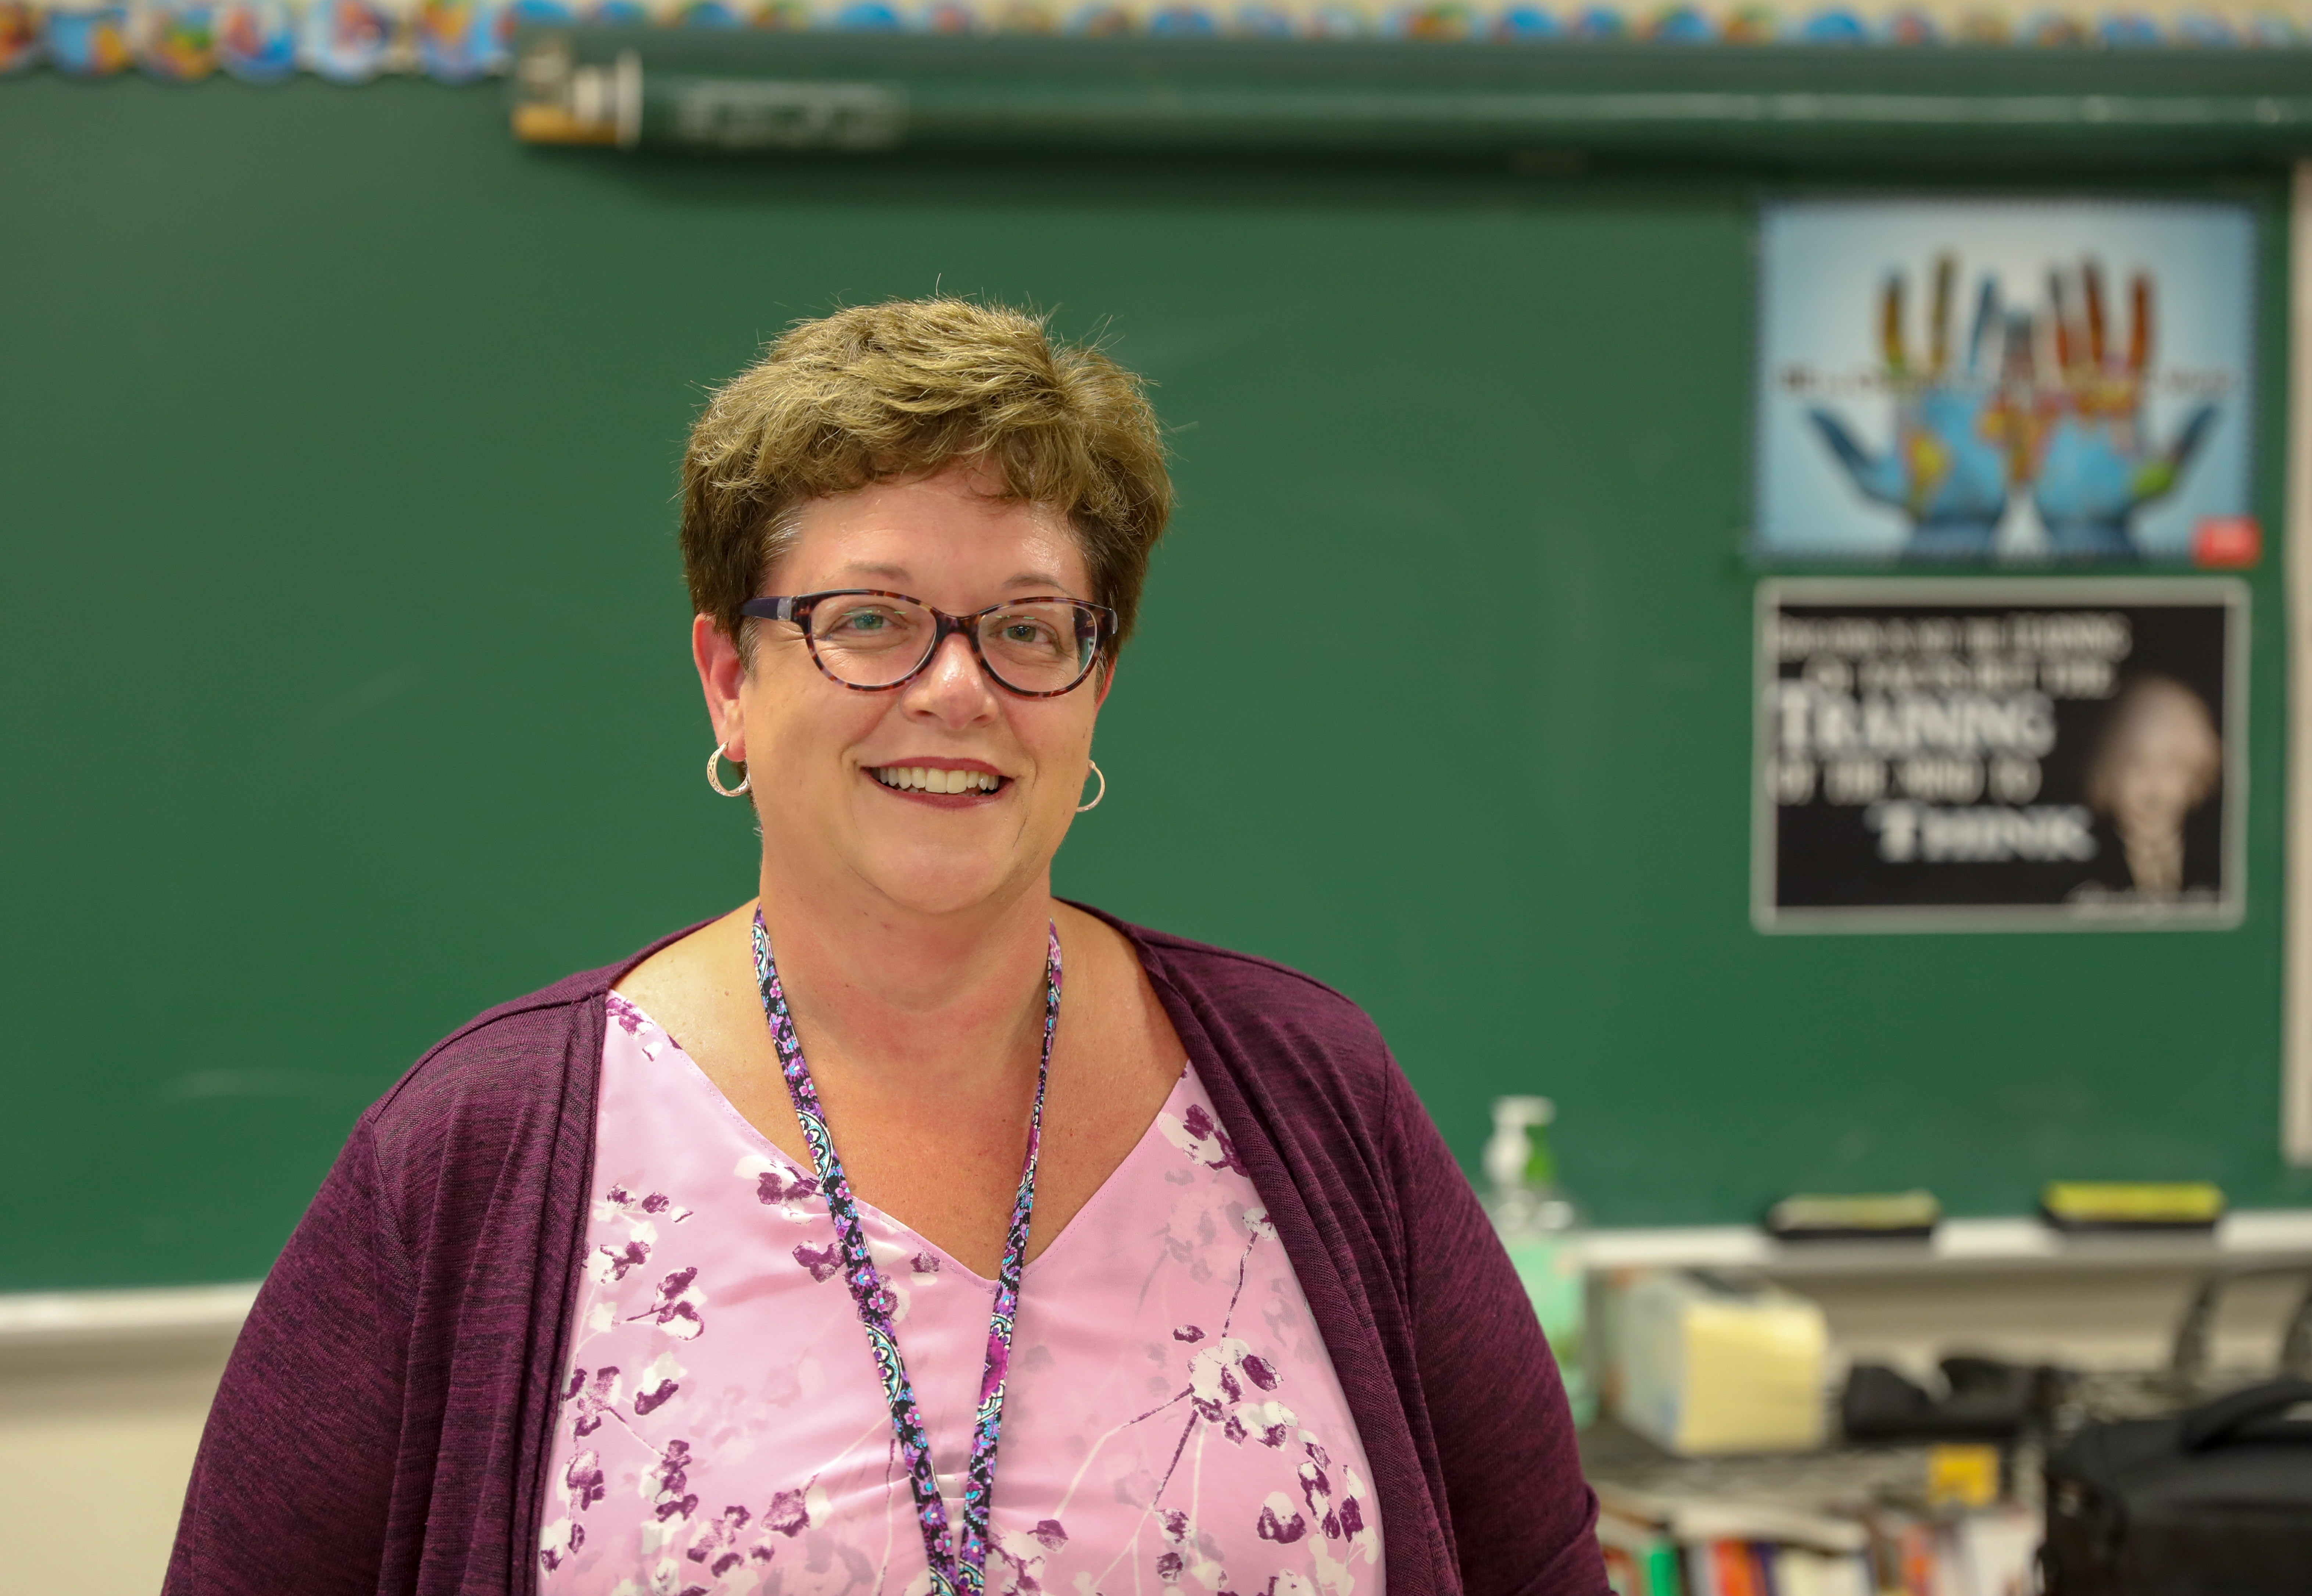 Hills East's Cynthia Cullen Named AGS Geography Teacher Fellow